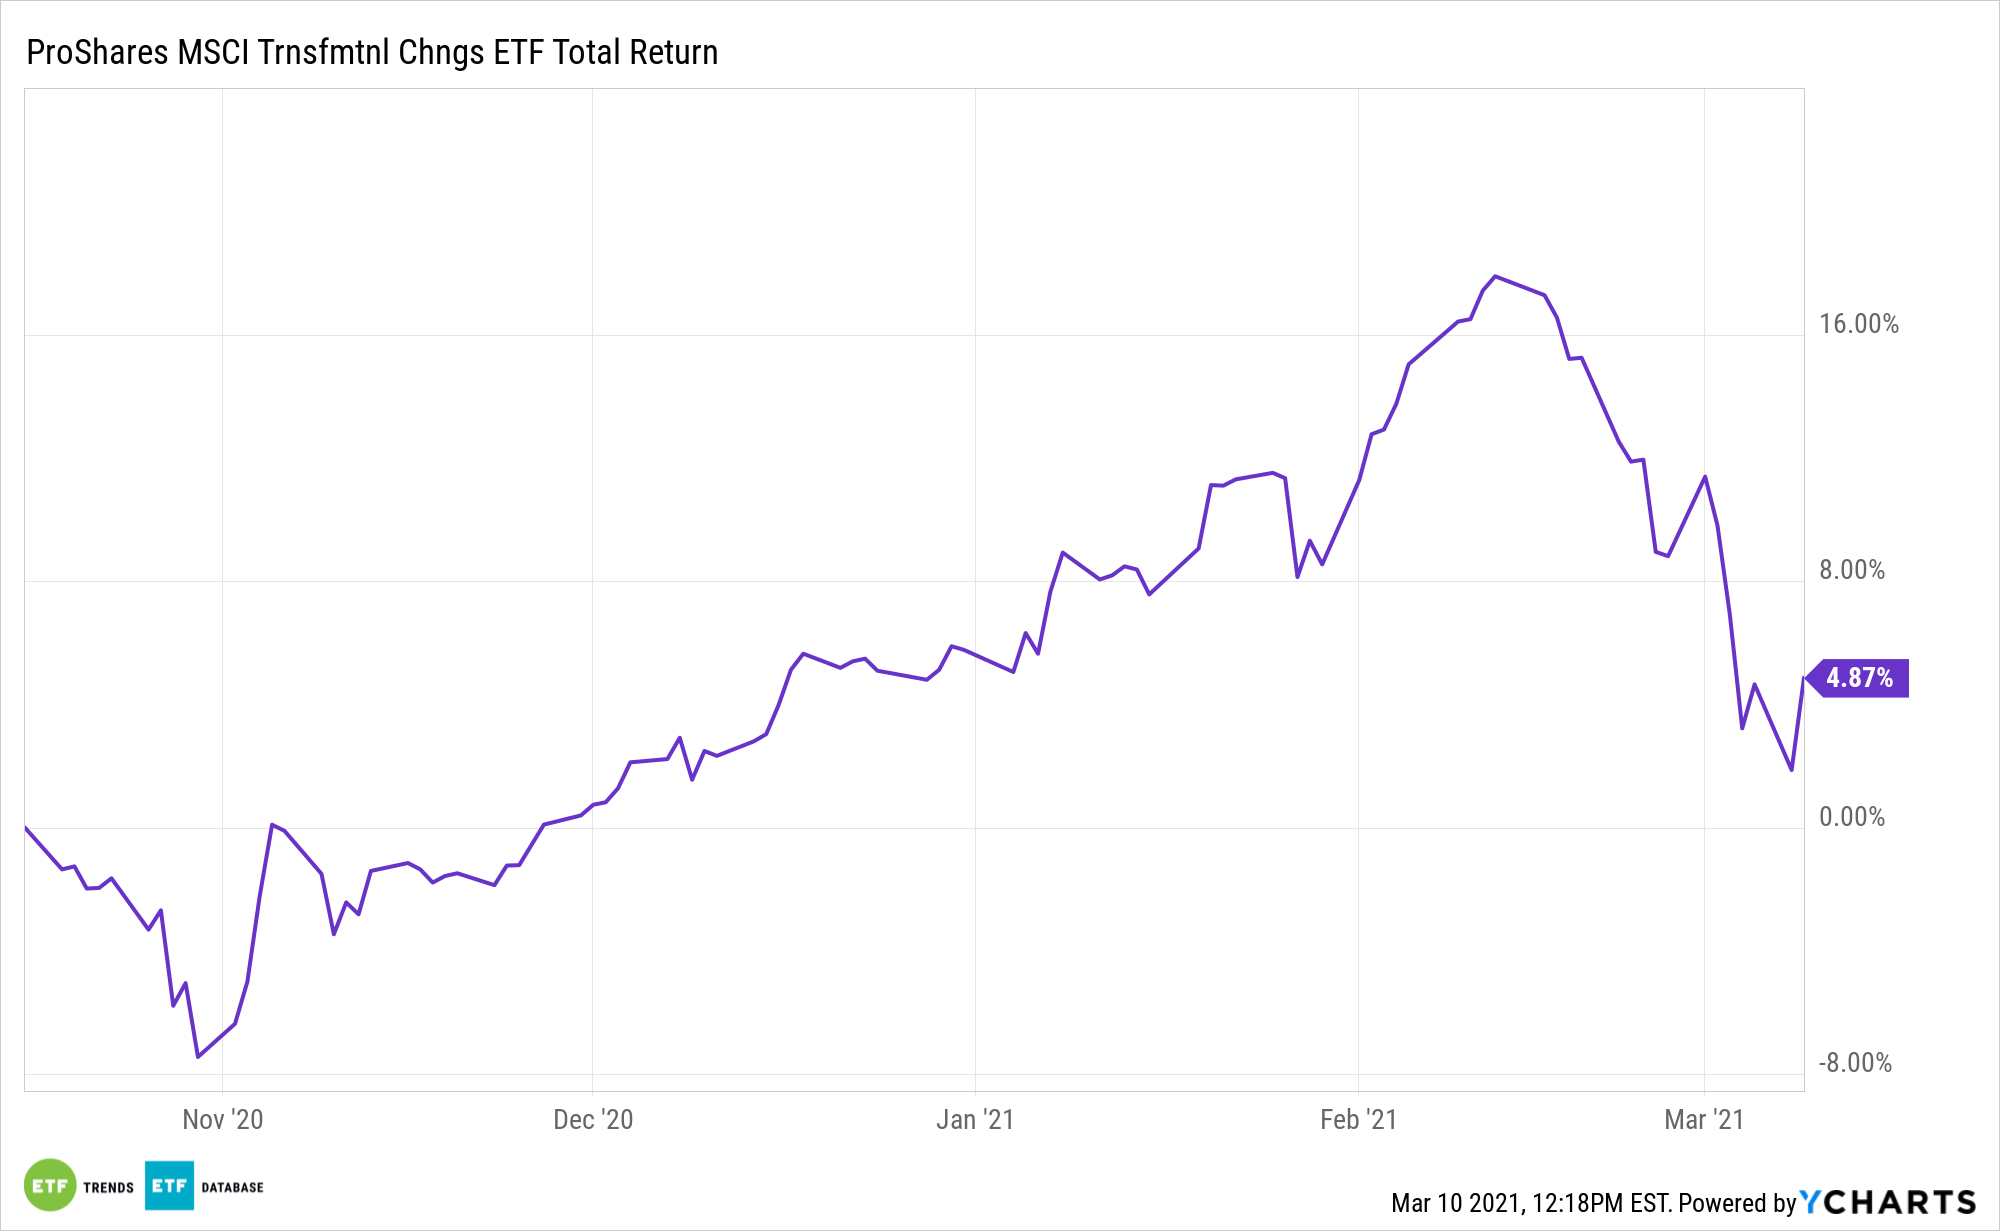 ANEW 6 Month Total Return